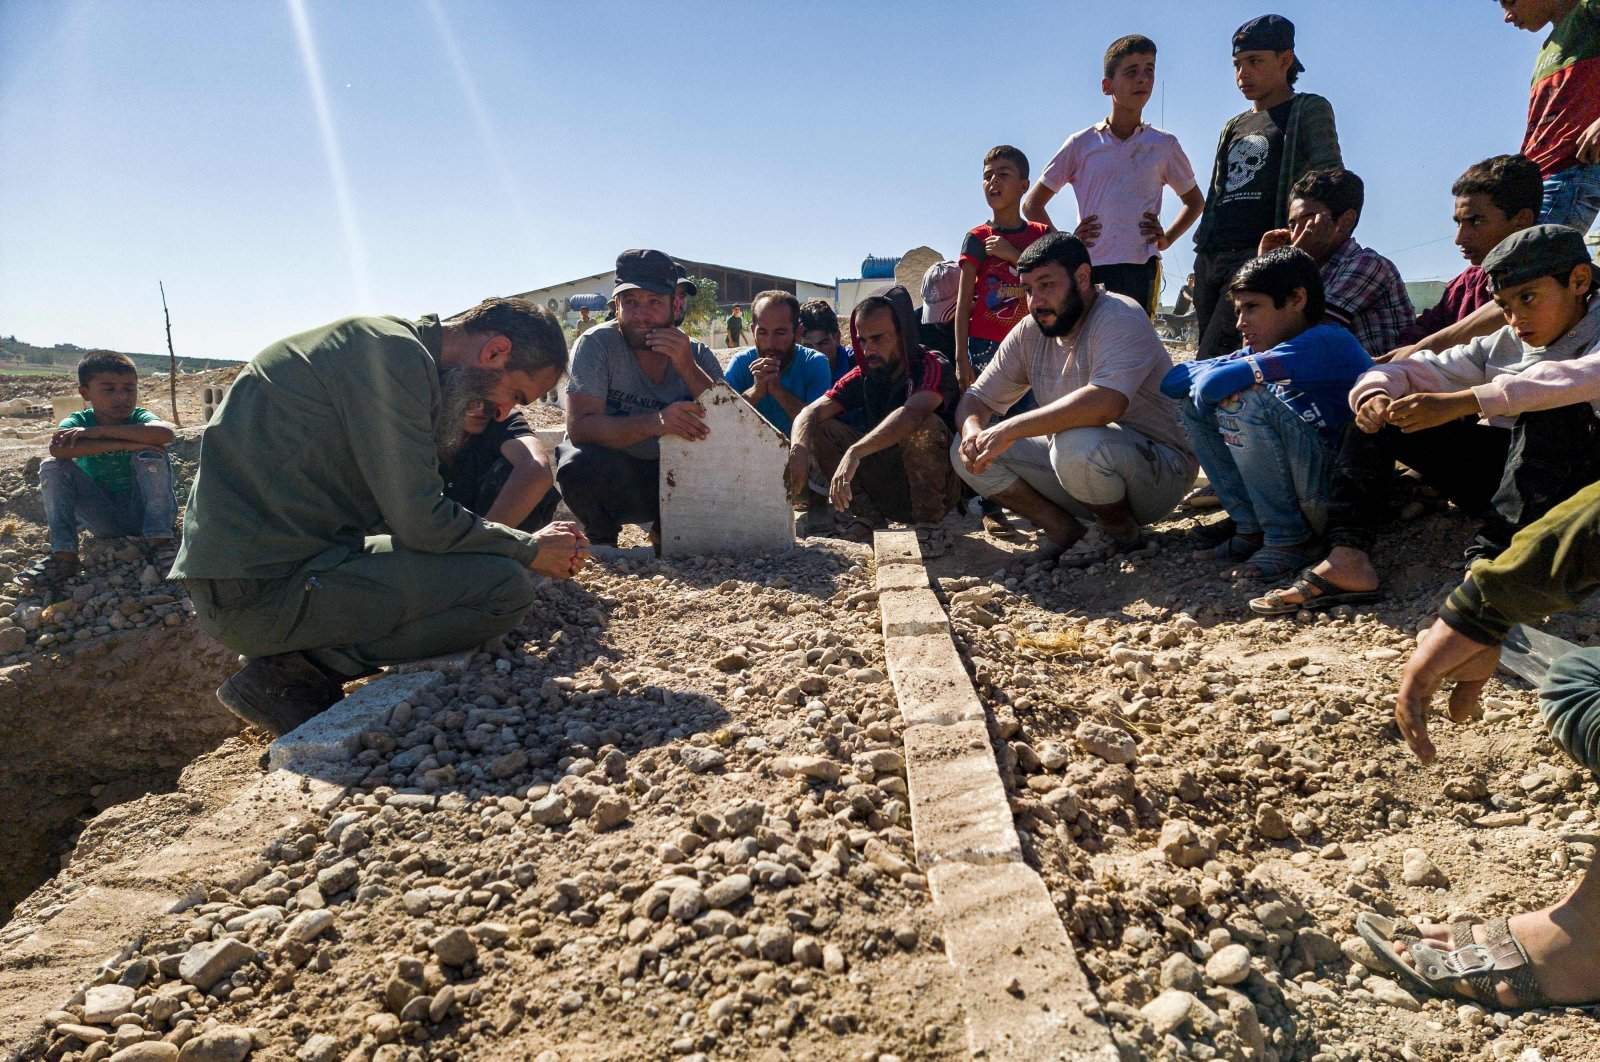 """Mourners gather by the grave of one of fighters from the """"Hamza Division"""" Syrian opposition group killed in Russian air raids in the countryside of Aleppo in the Afrin region of northwestern Syria, Sept. 26, 2021. (AFP Photo)"""